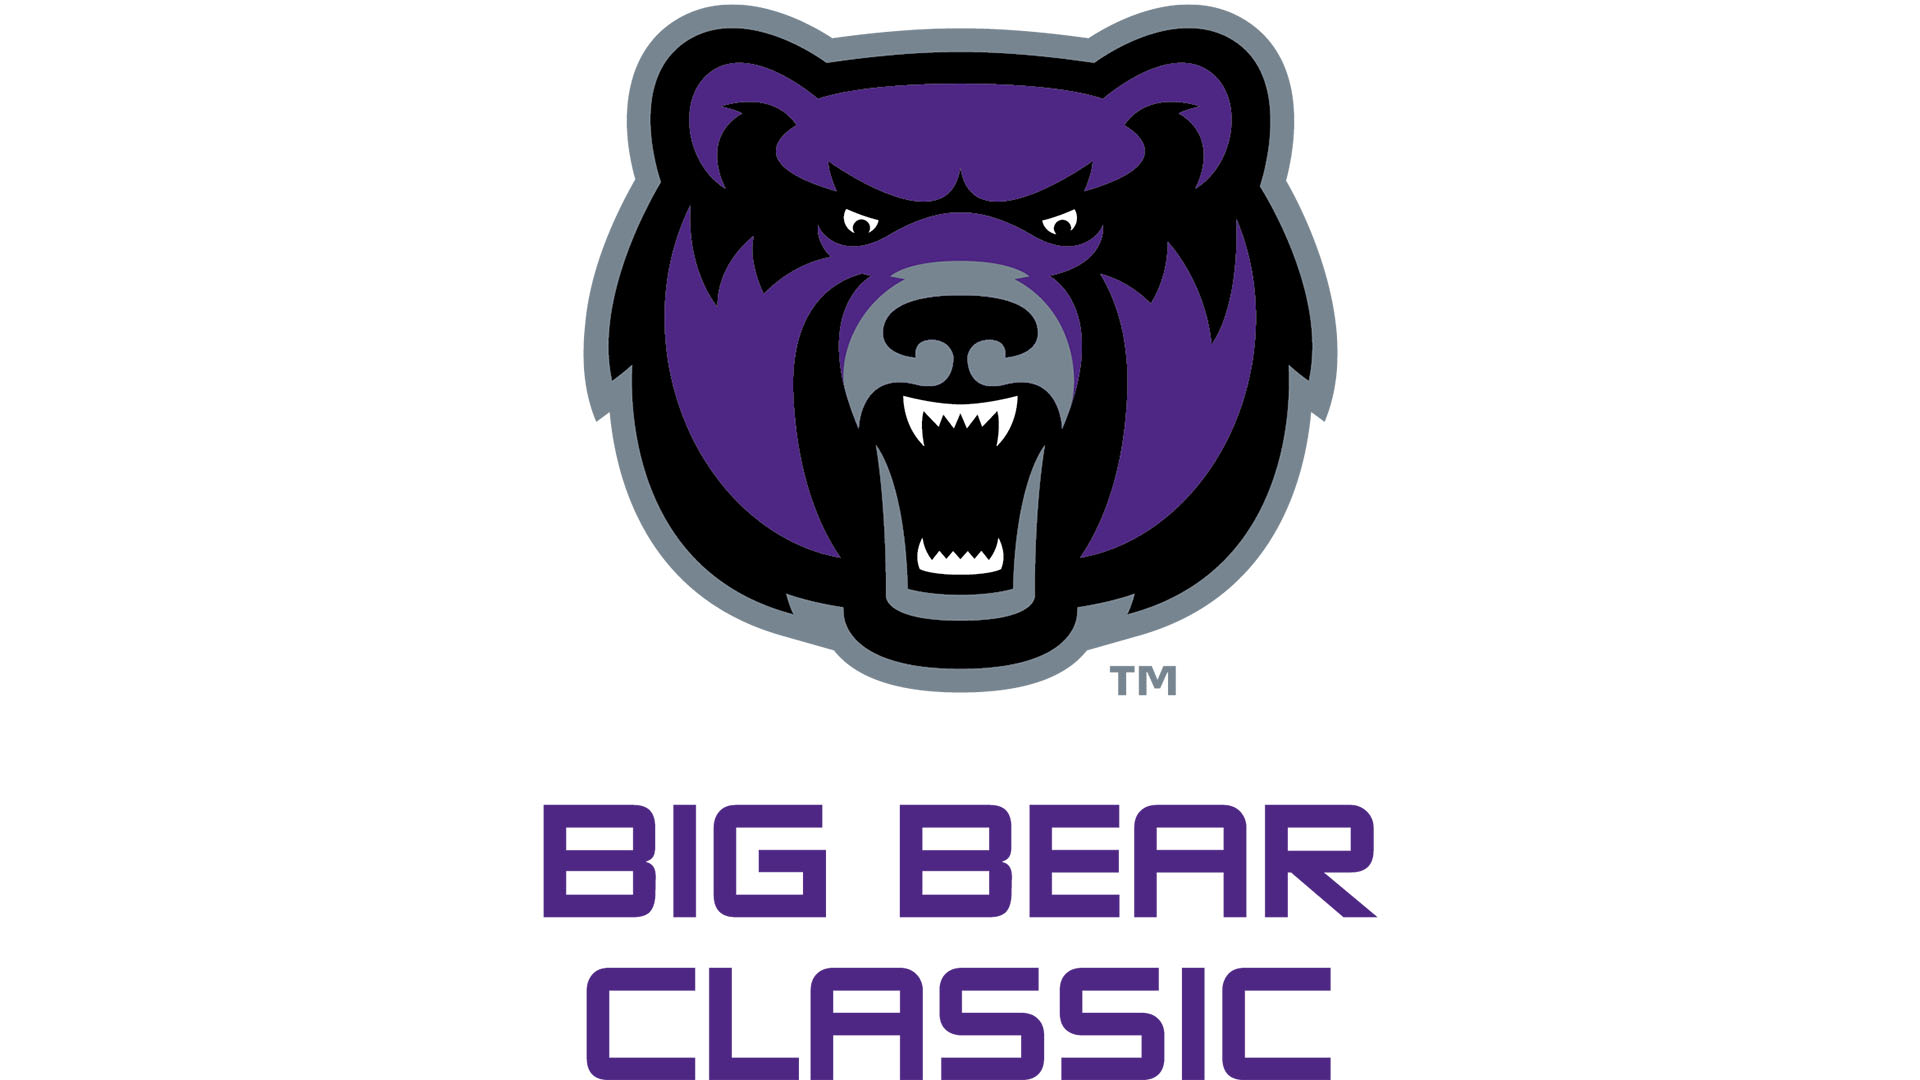 UCA hosting inaugural 'Big Bear Clic' bike ride | KARK on uca campus layout, fullerton zip code map, ualr campus map, university of houston victoria campus map, uca campus virtual, uca campus dorms, conway county arkansas township map, north central college campus map,